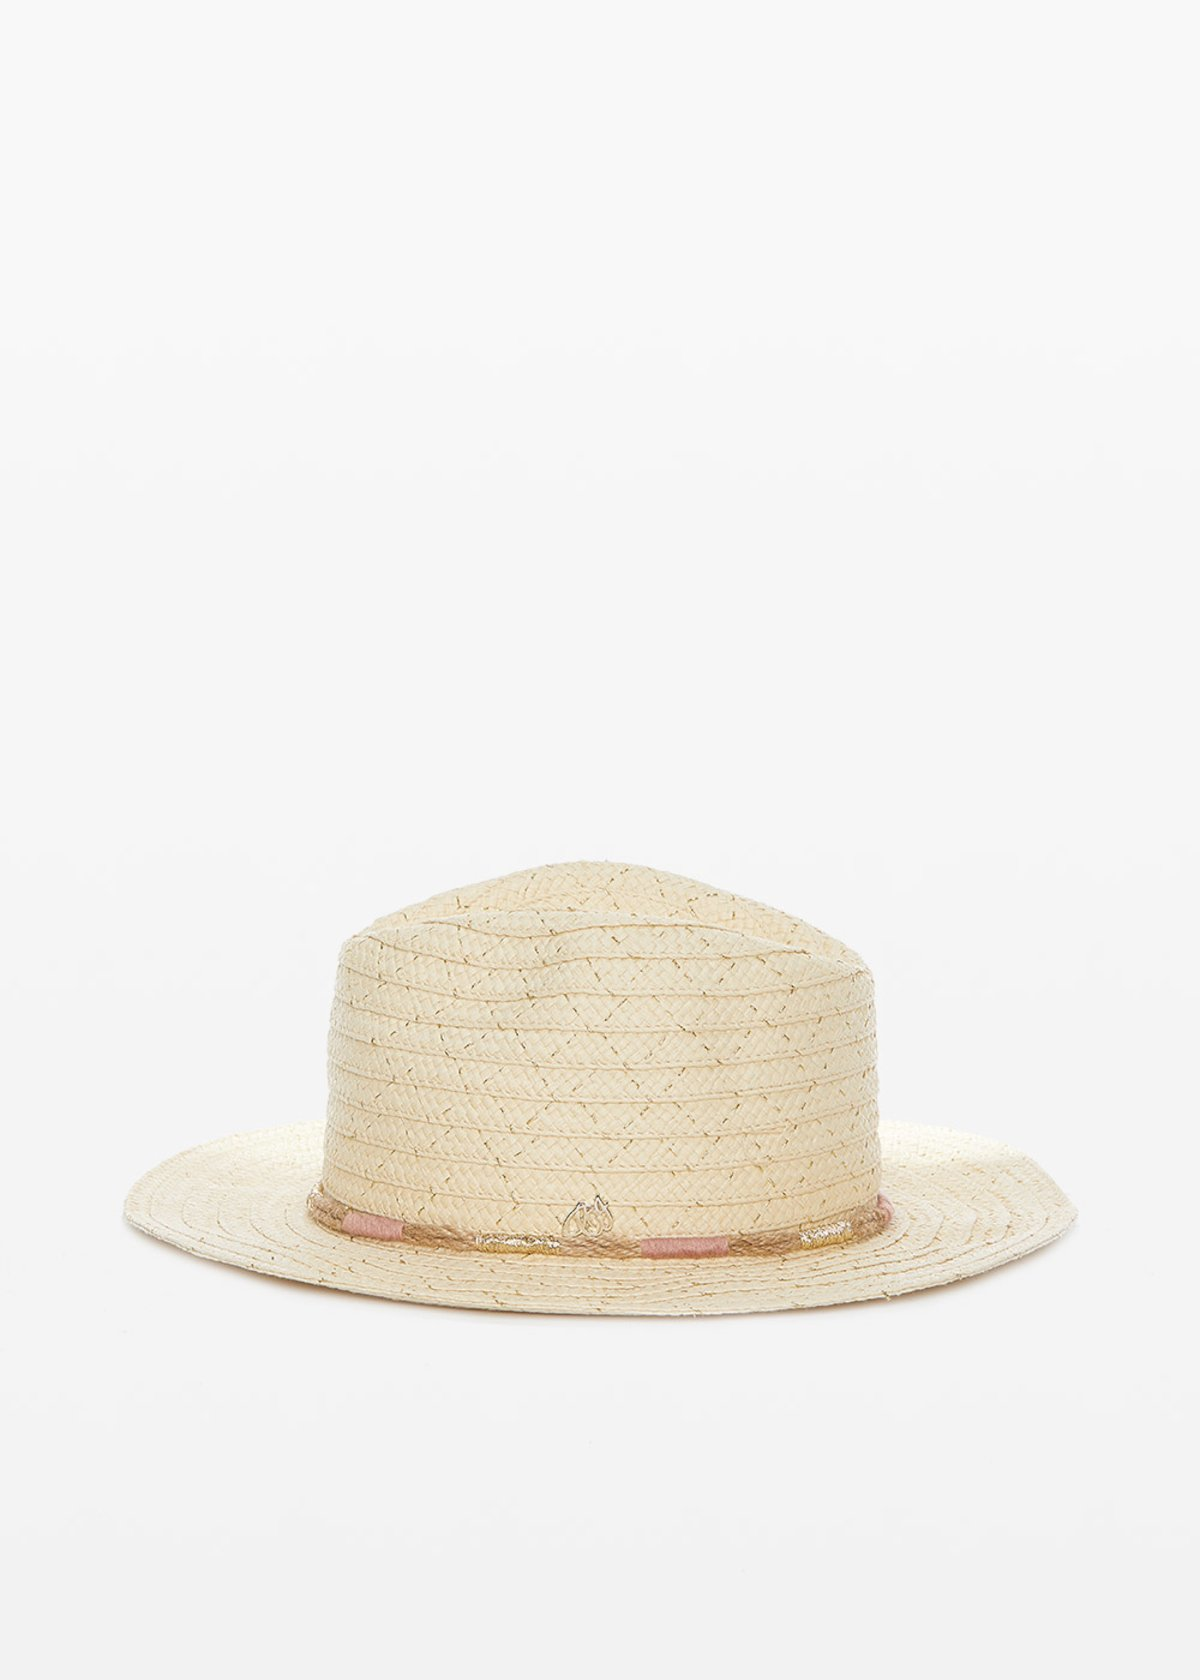 Ciber straw hat with drawstring detail - Light Beige /       Gold Fantasia - Woman